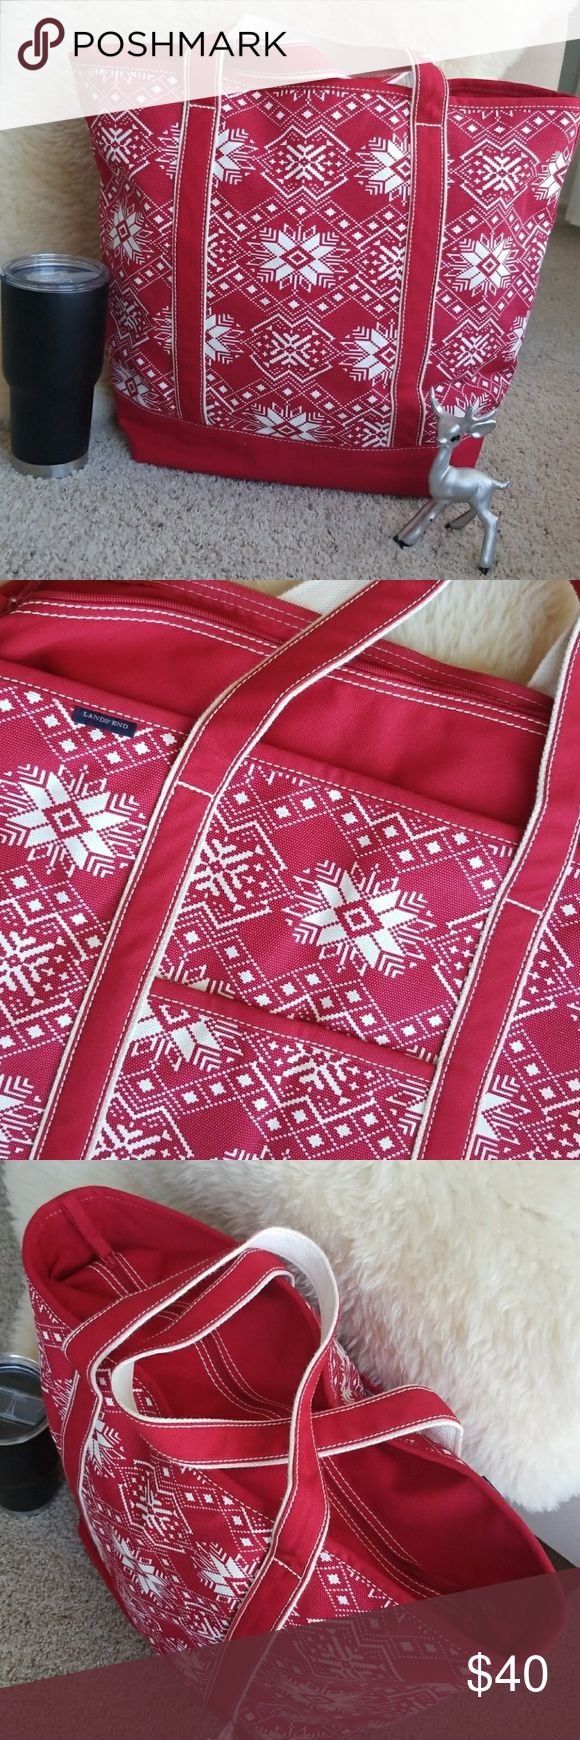 """Lands End Nordic Canvas Extra-Large Tote Rare retired design, looks like a Christmas snowflake Nordic sweater. Rugged 24oz canvas tote will stand the test of time, water resistant base & trim. Reinforced bottom & handles, zipper closure, tons of inside pockets & one outside. This bag is brand new, only removed from it's plaatic protective bag for pics. Base is 13x9.5"""", 16"""" tall, 22"""" across top - this is Lands Ends largest bag that really could be an overnight/weekends! Smoke-free home…"""